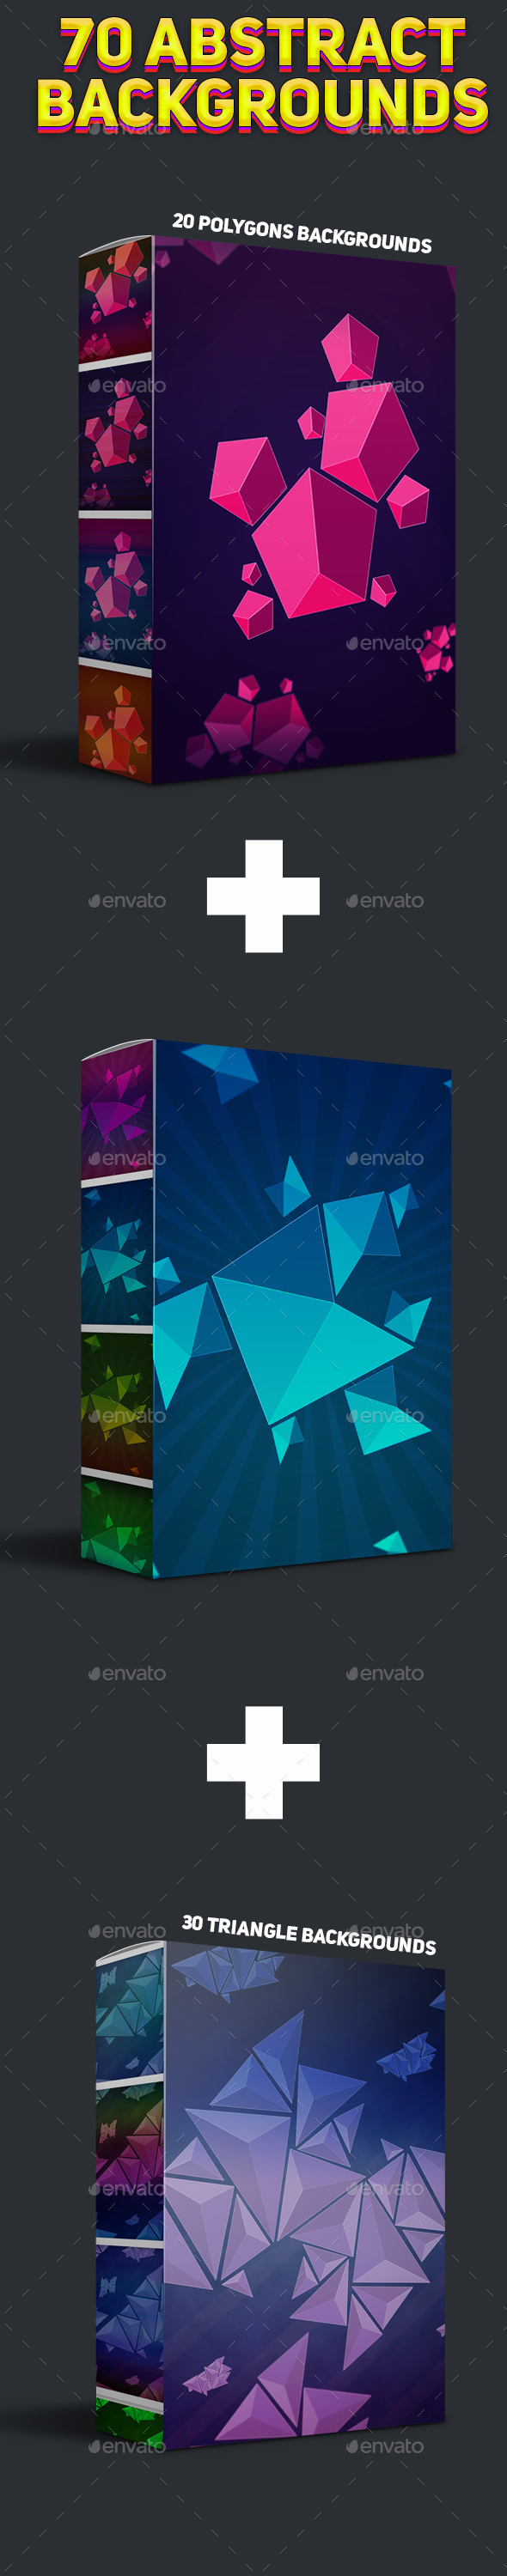 70 Abstract Backgrounds Bundle - Abstract Backgrounds